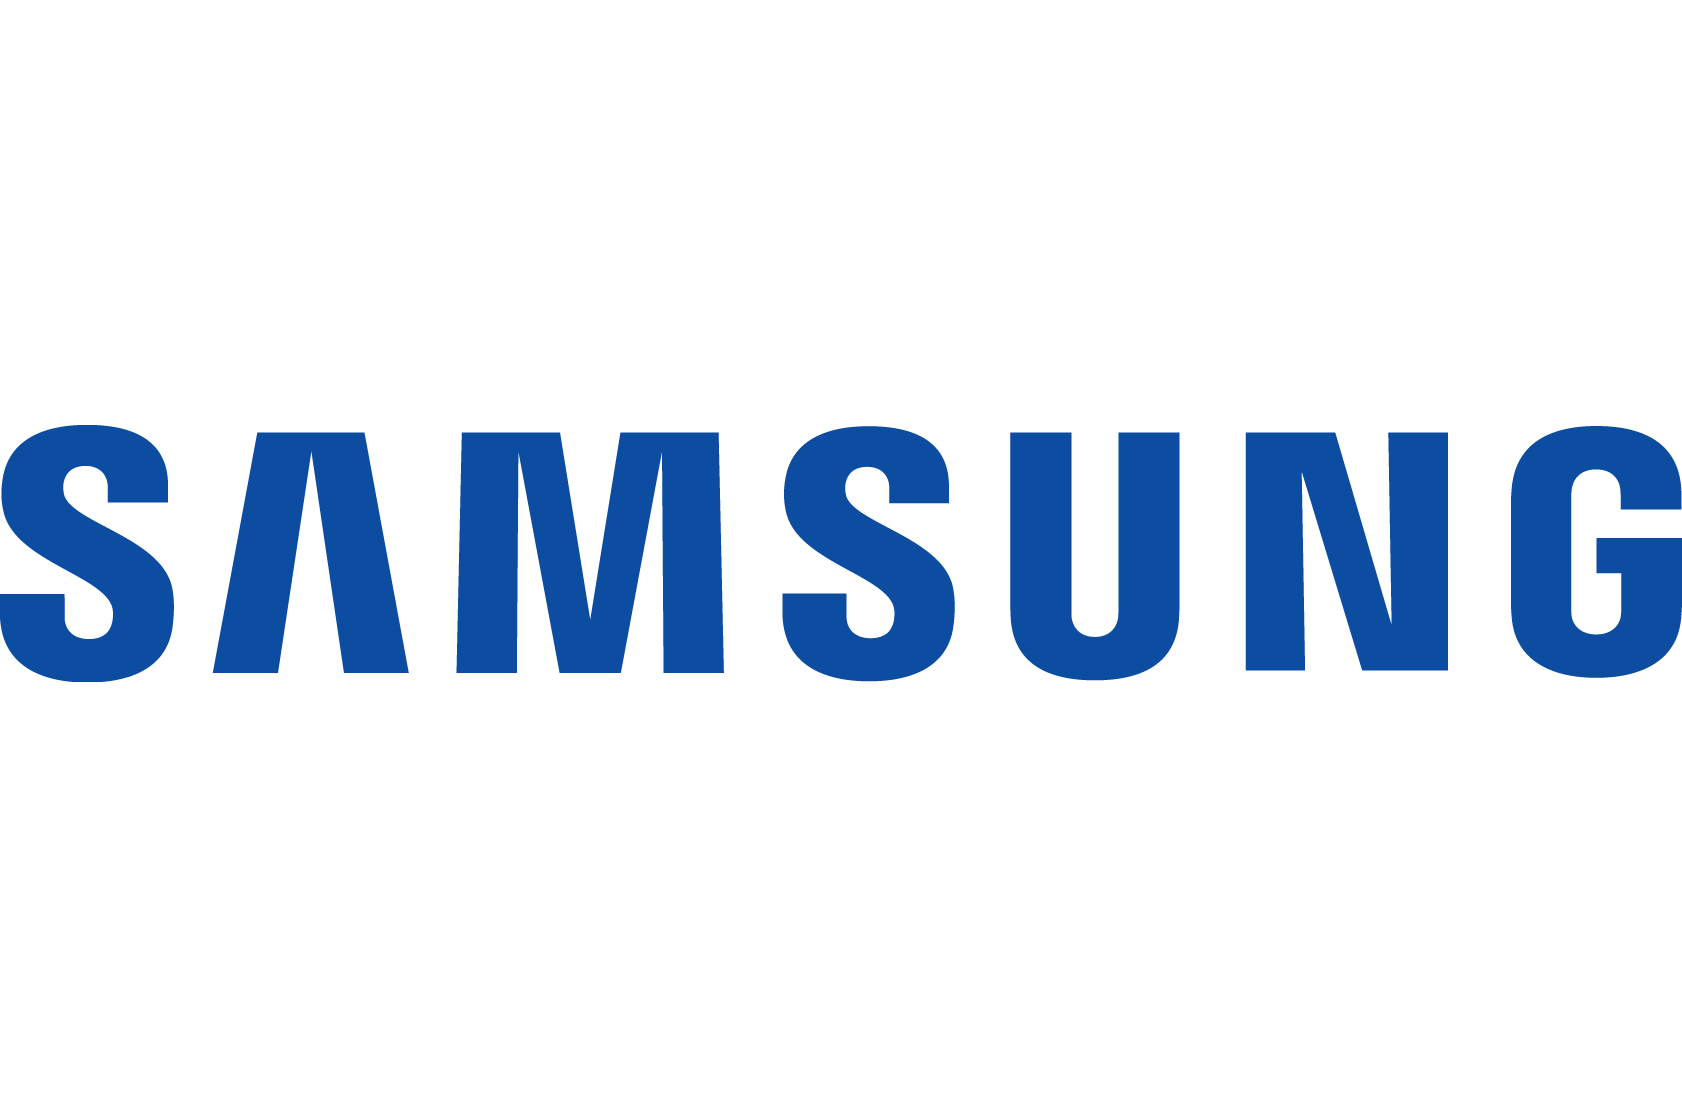 Samsung Washing Machine Extended Warranty for 3rd, 4th and 5th year